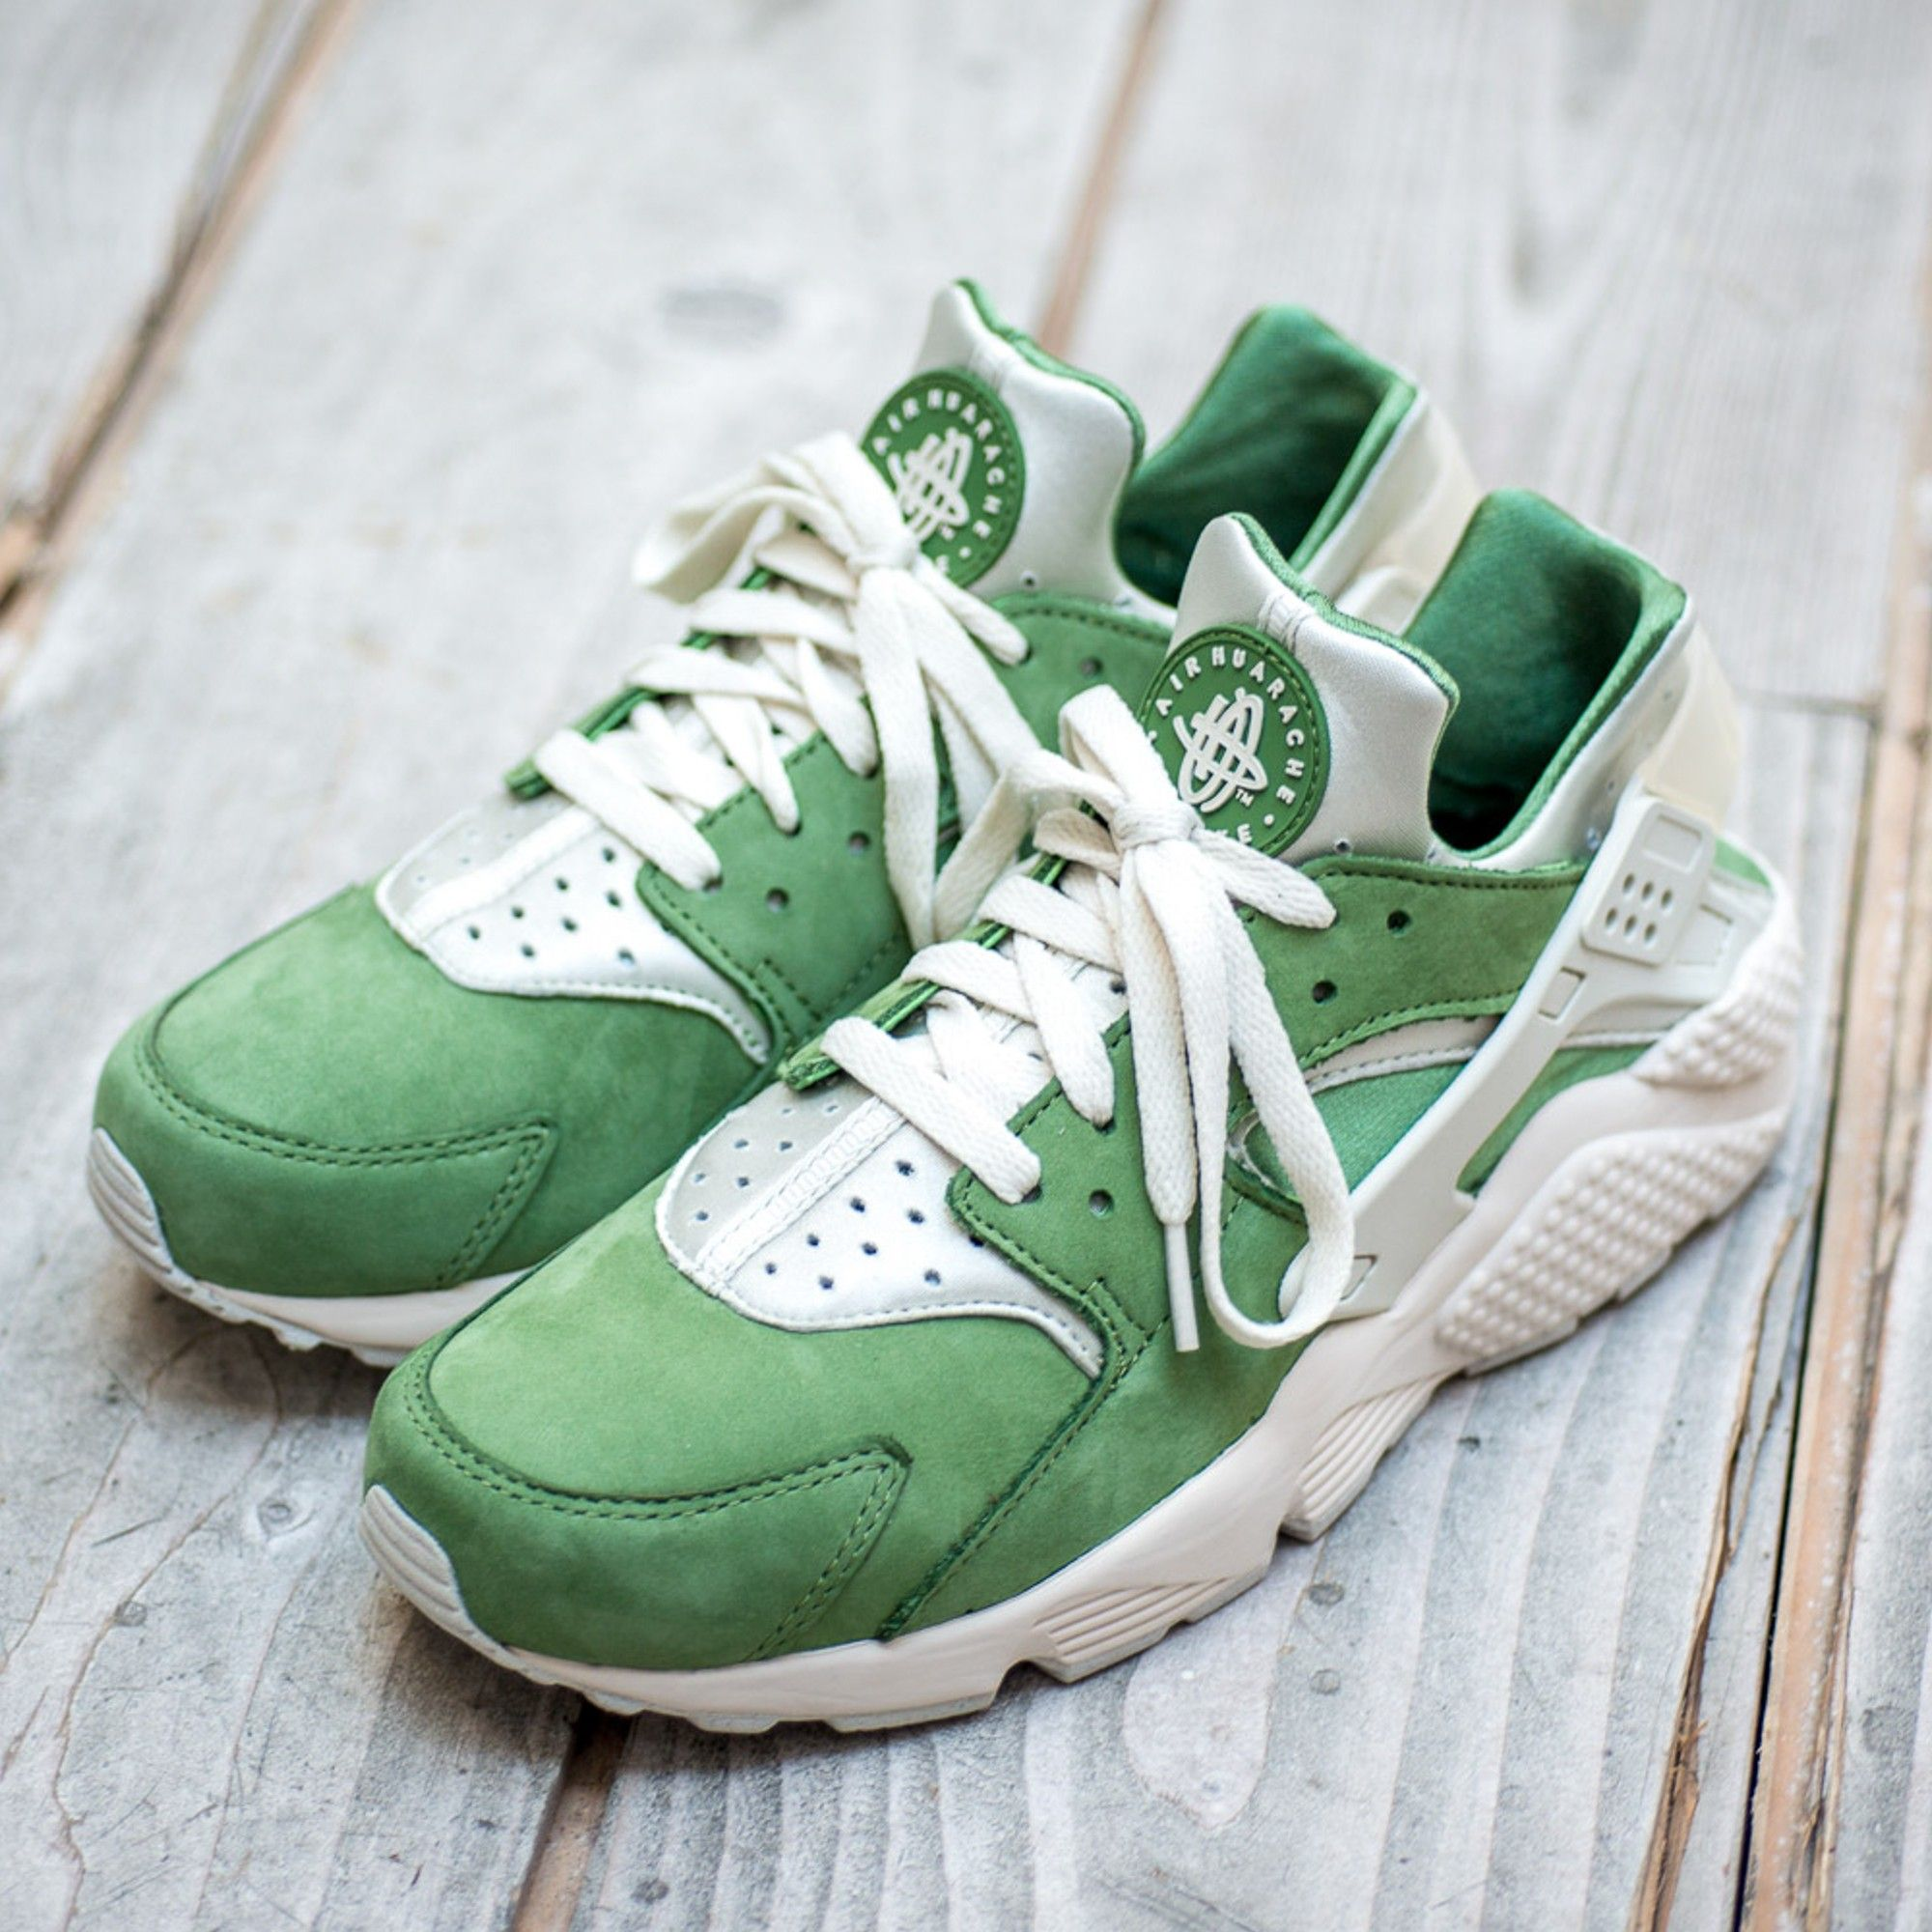 NIKE AIR HUARACHE PRM LOW QS TREE LIME GREEN BAMBOO SUEDE 704830 300